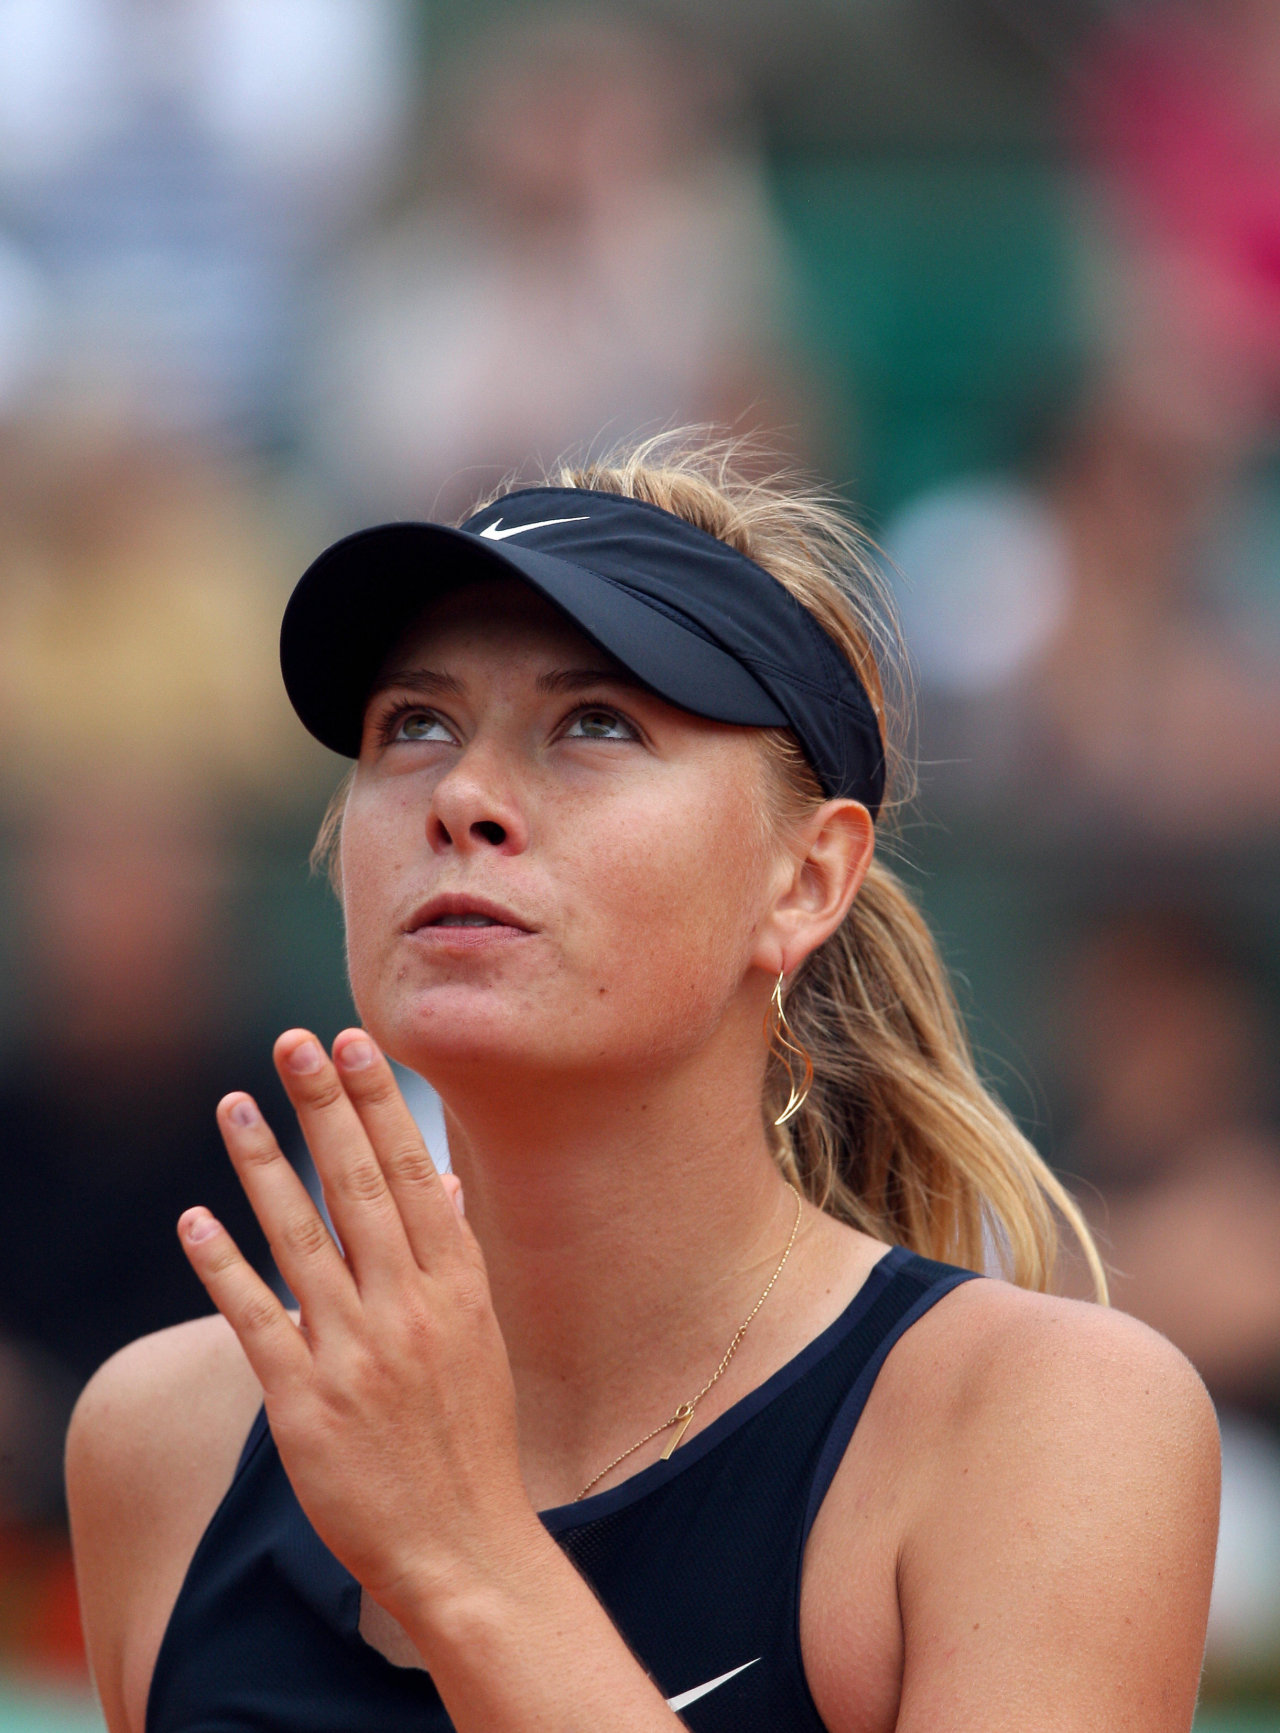 Maria Sharapova - Wallpaper Actress